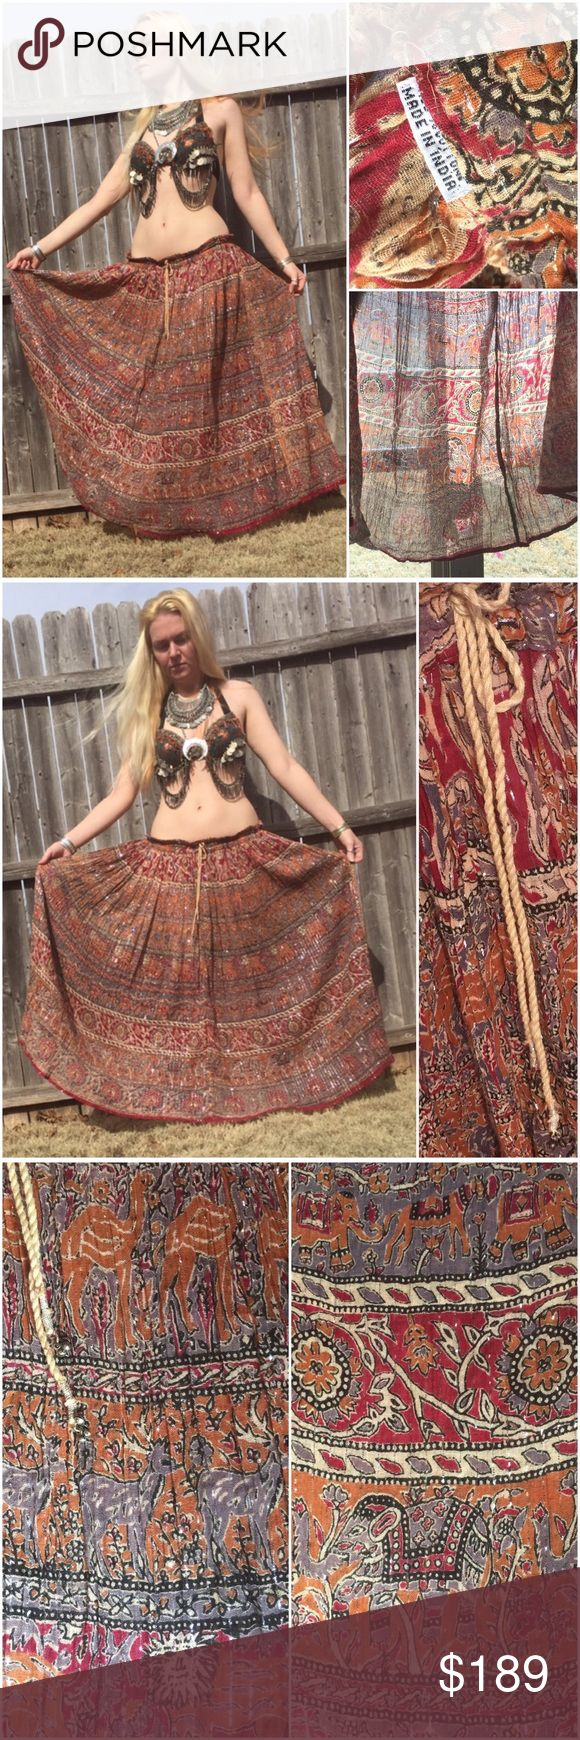 70s metallic gauze India Boho festival gypsy skirt Vintage 1970s metallic gauze India dress skirt. It has all kinds of different animals including peacocks , deer , elephants & sun gods. The skirt is covered with metallic threads giving a beautiful shimmery glittery glow! Size S-L adjustable rope belt with bells. Skirt is older than Spell brand & better quality. I also have listed a RARE sultana Adini caftan gypsy dress separately. India imports spell gypsy collective phool Anna Konya belly…